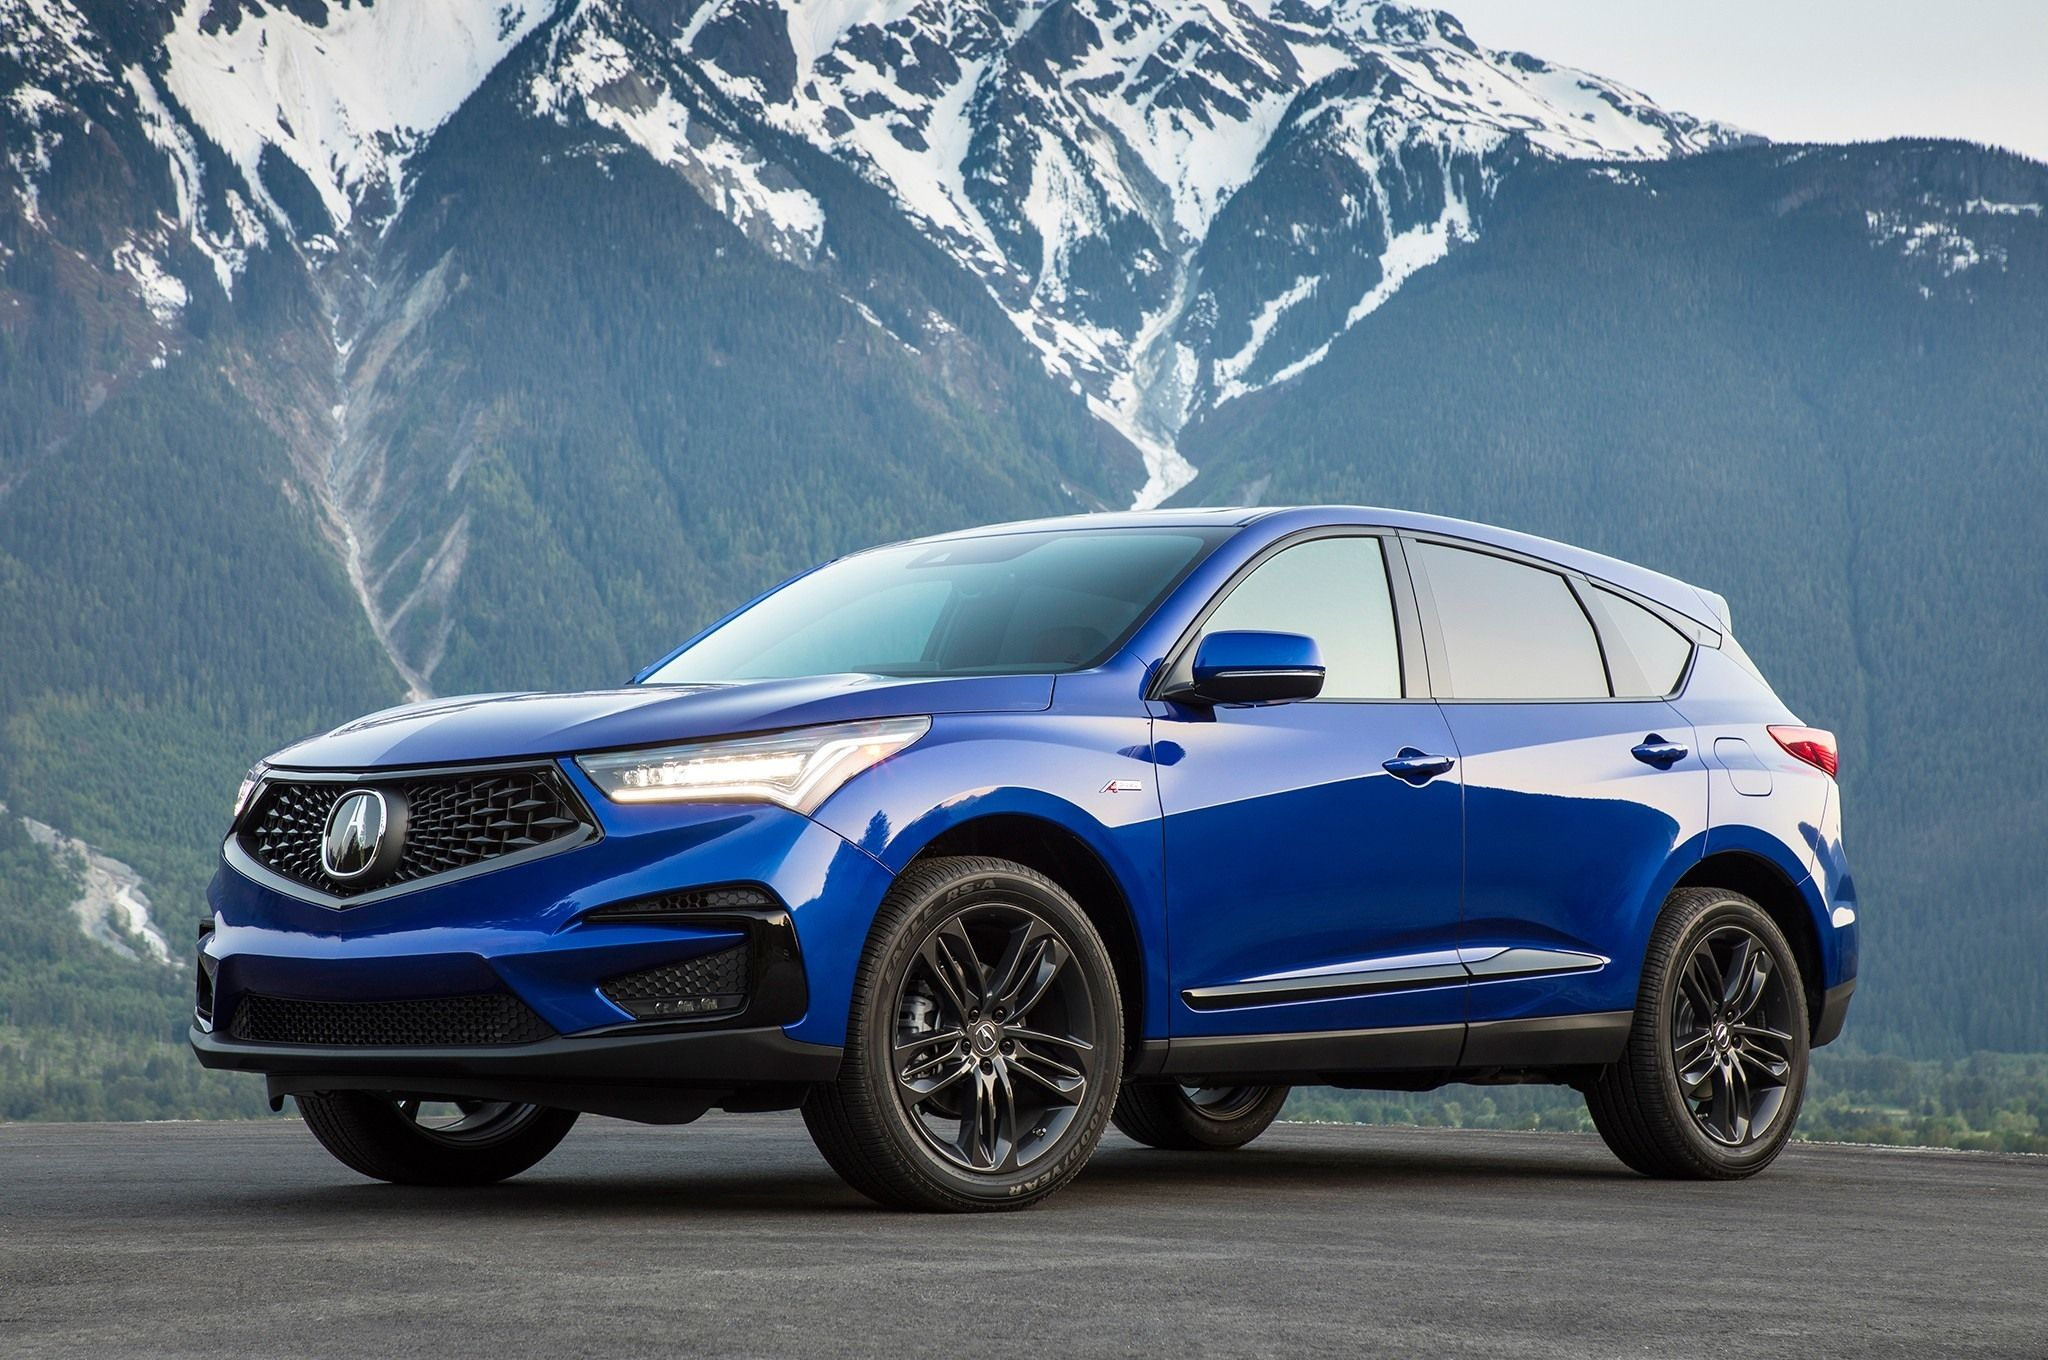 2019 Acura Mdx Owners Manual Review Specs And Release Date Redesign Price And Review Concept Redesign And Review Releas Acura Rdx Best New Cars Acura Mdx